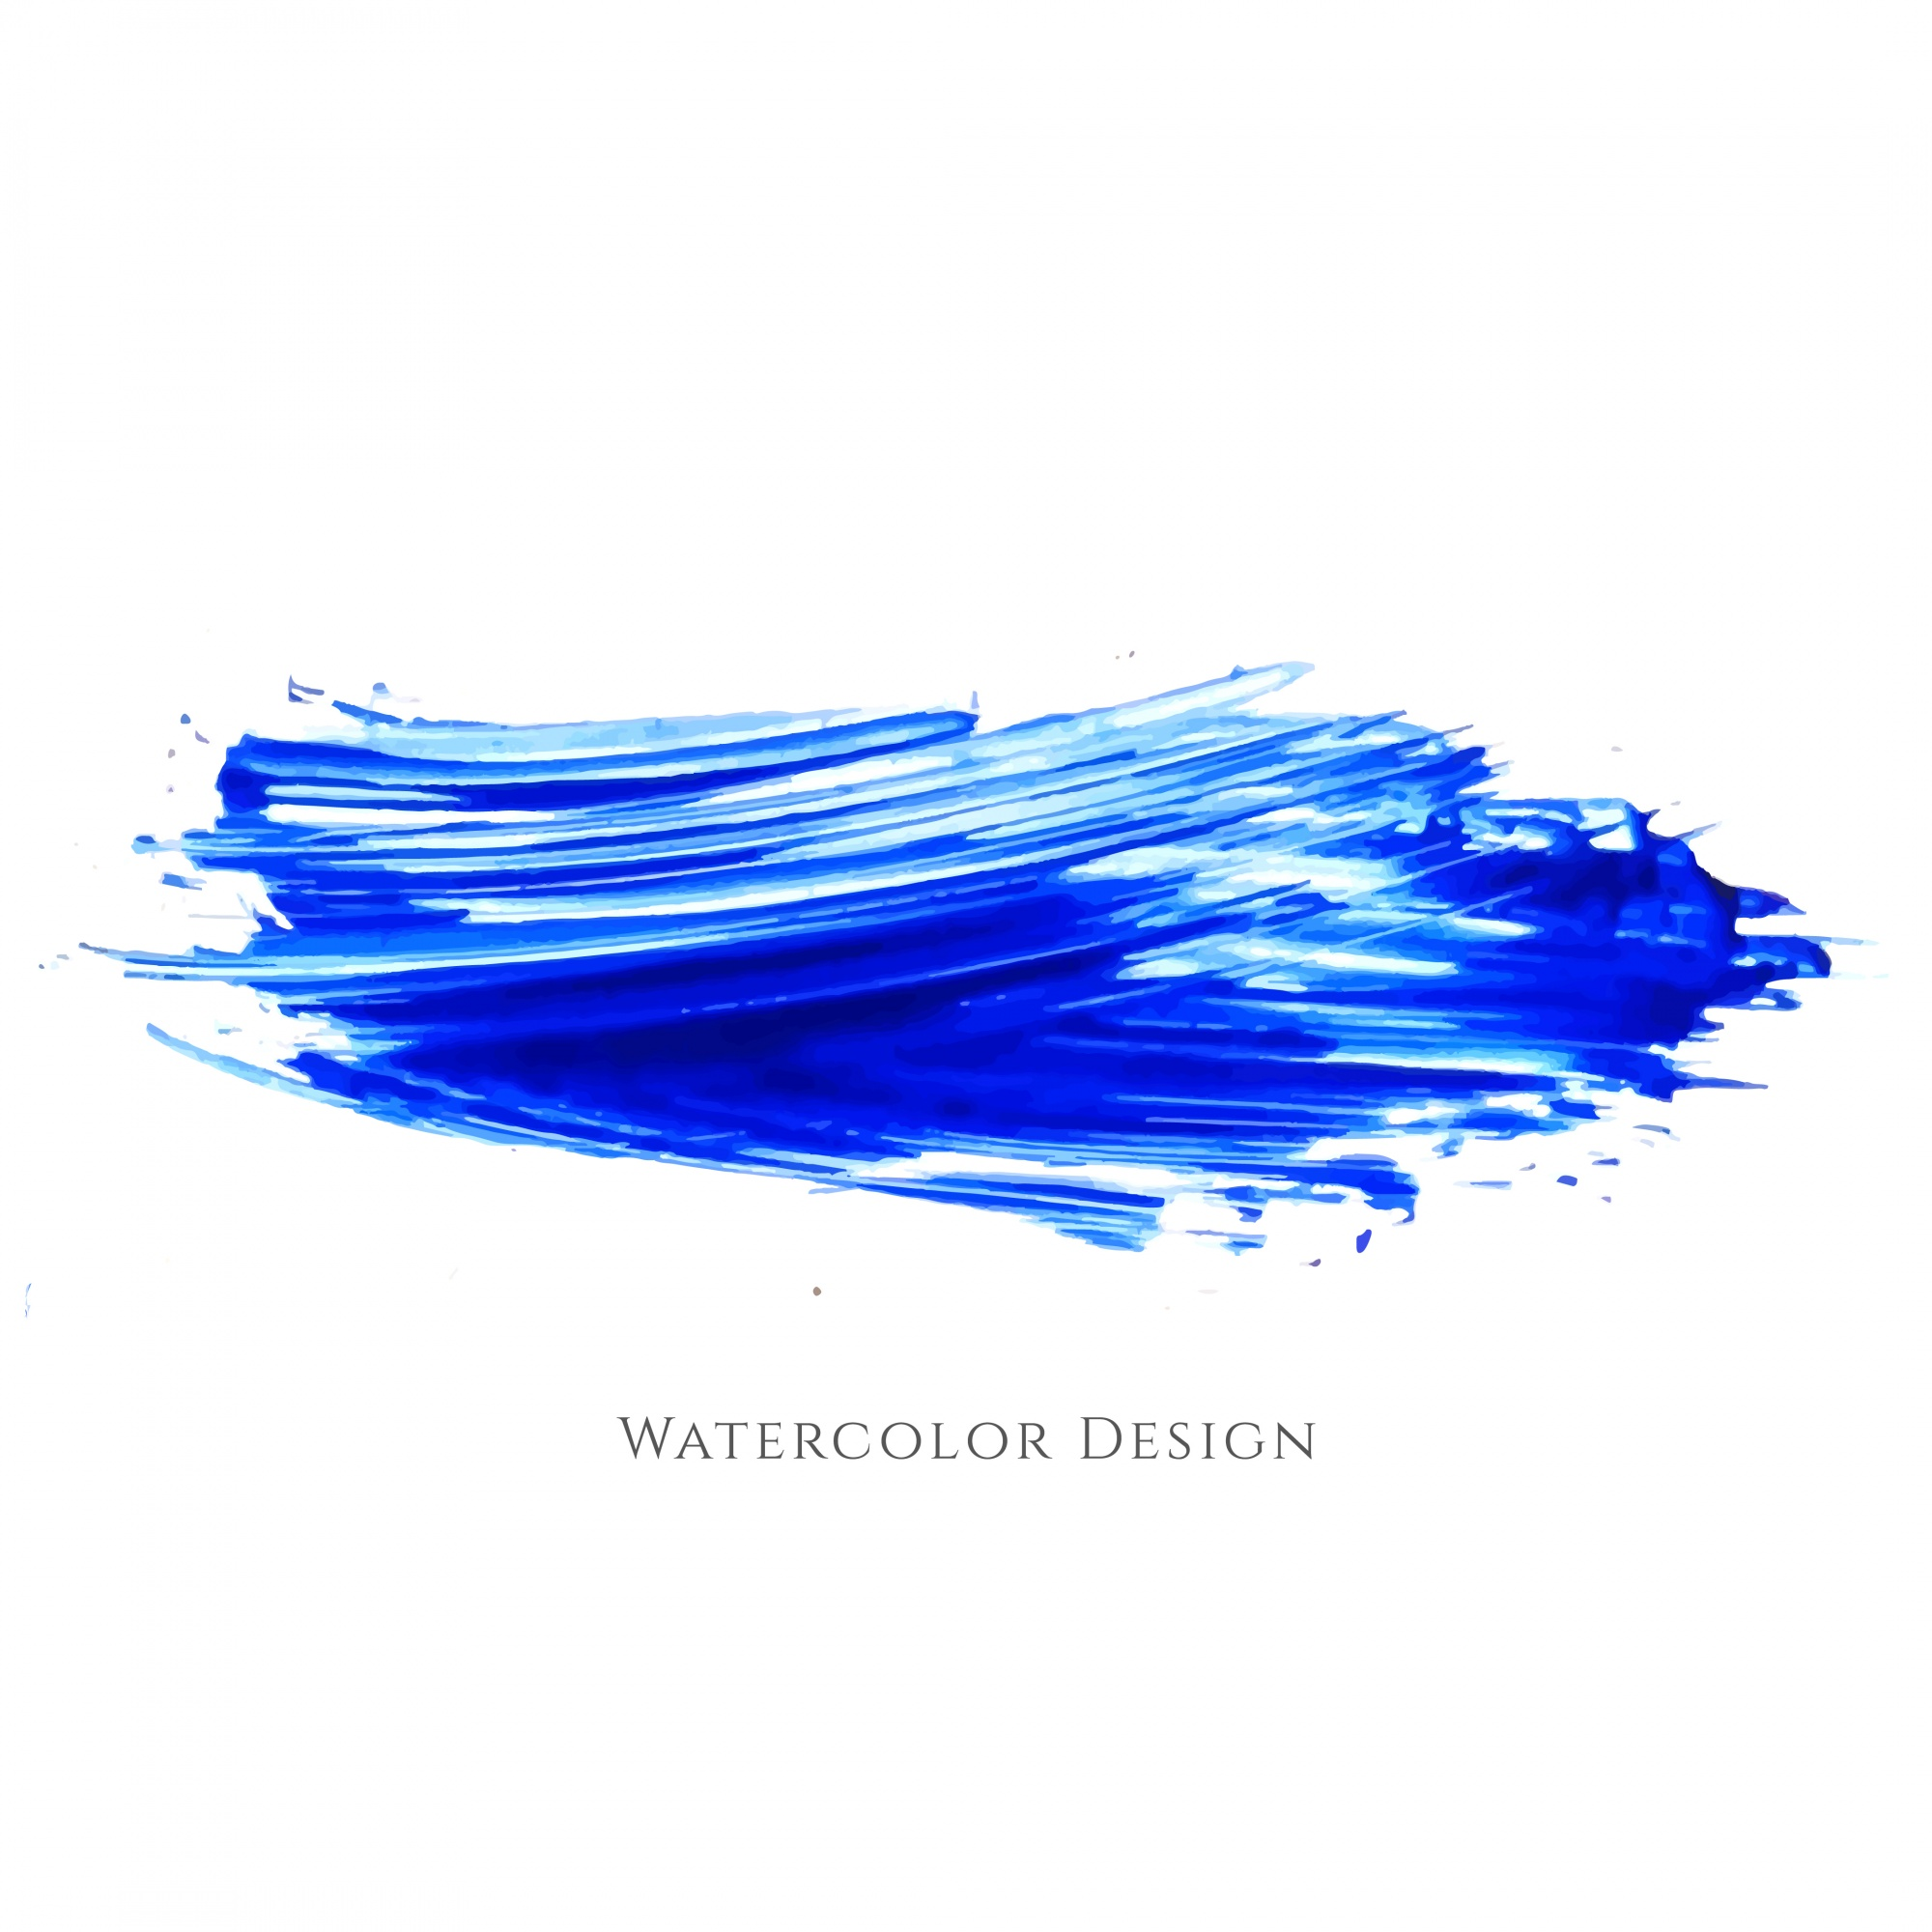 Abstract blue watercolor brush